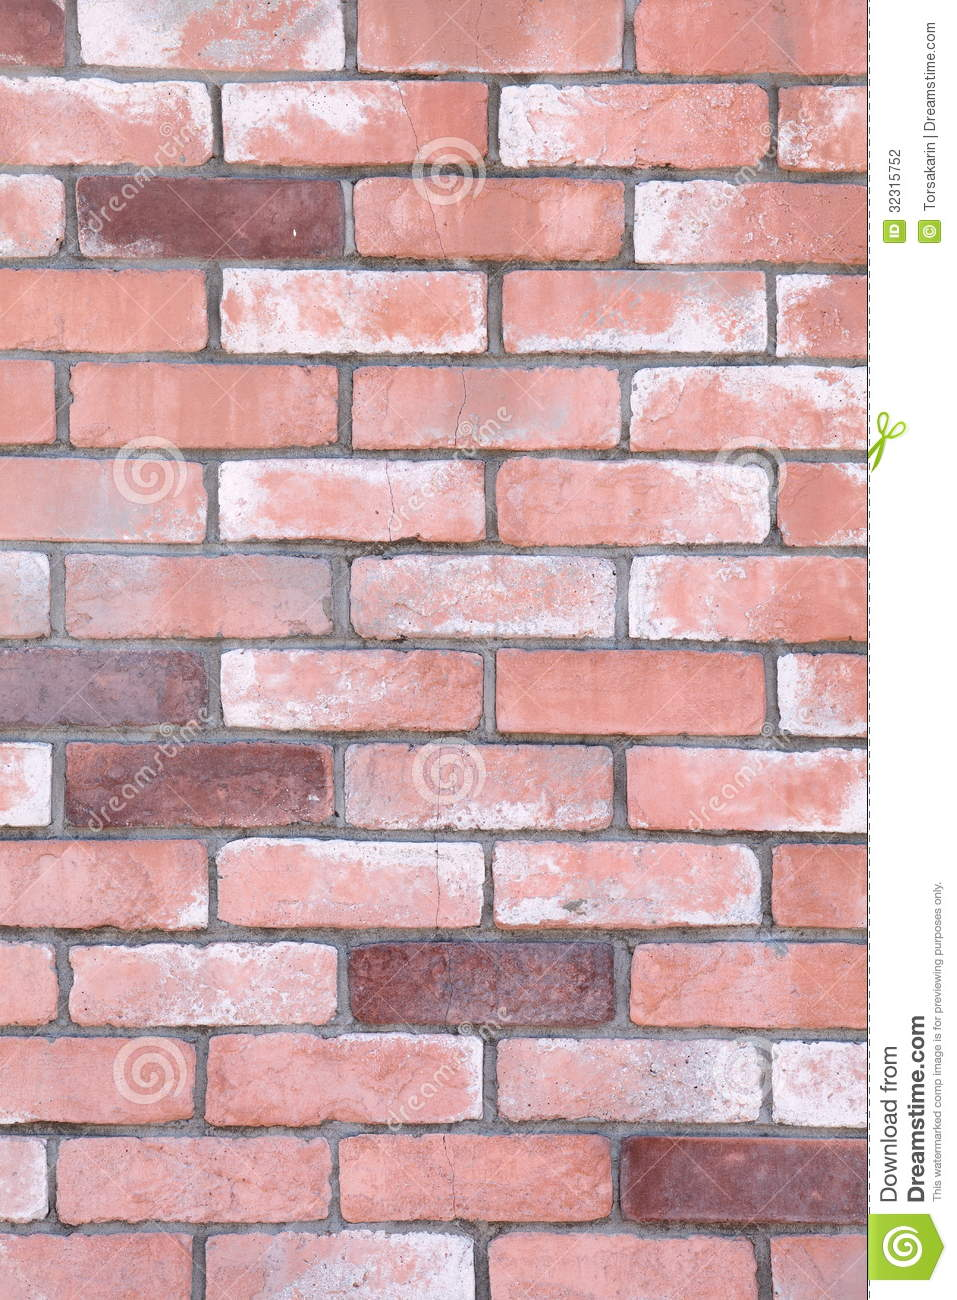 Decorative Brick Wall Design : Red brick wall stock photography image